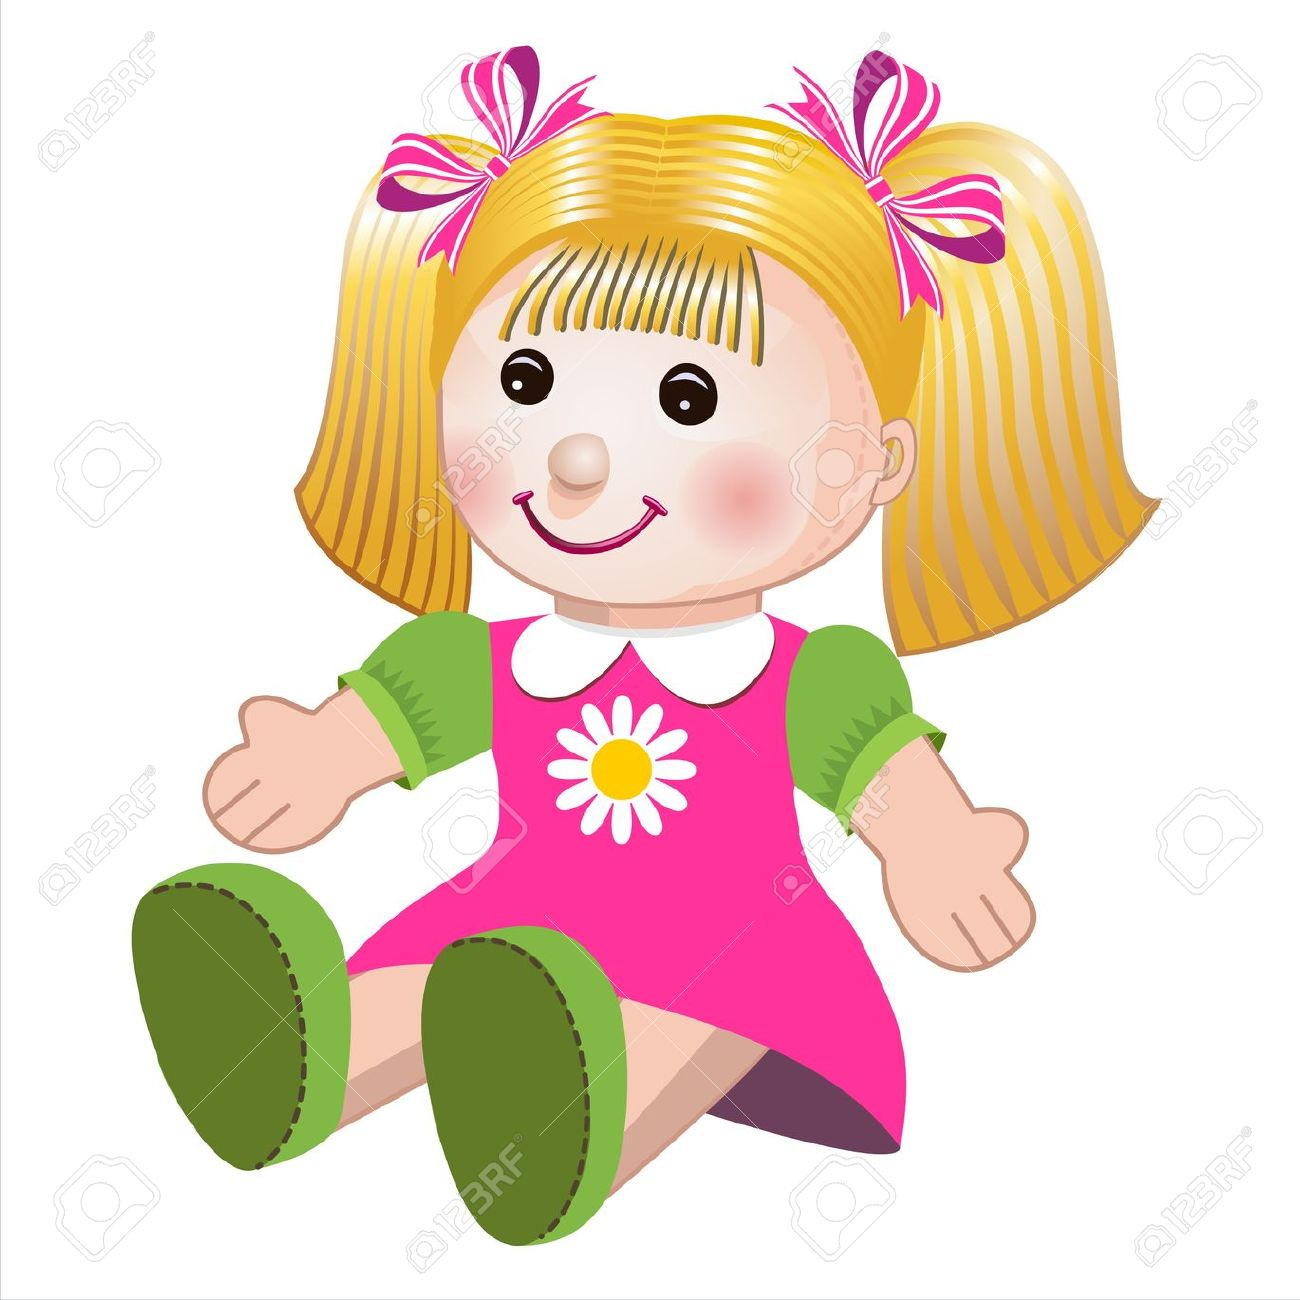 Toy Doll Clipart.